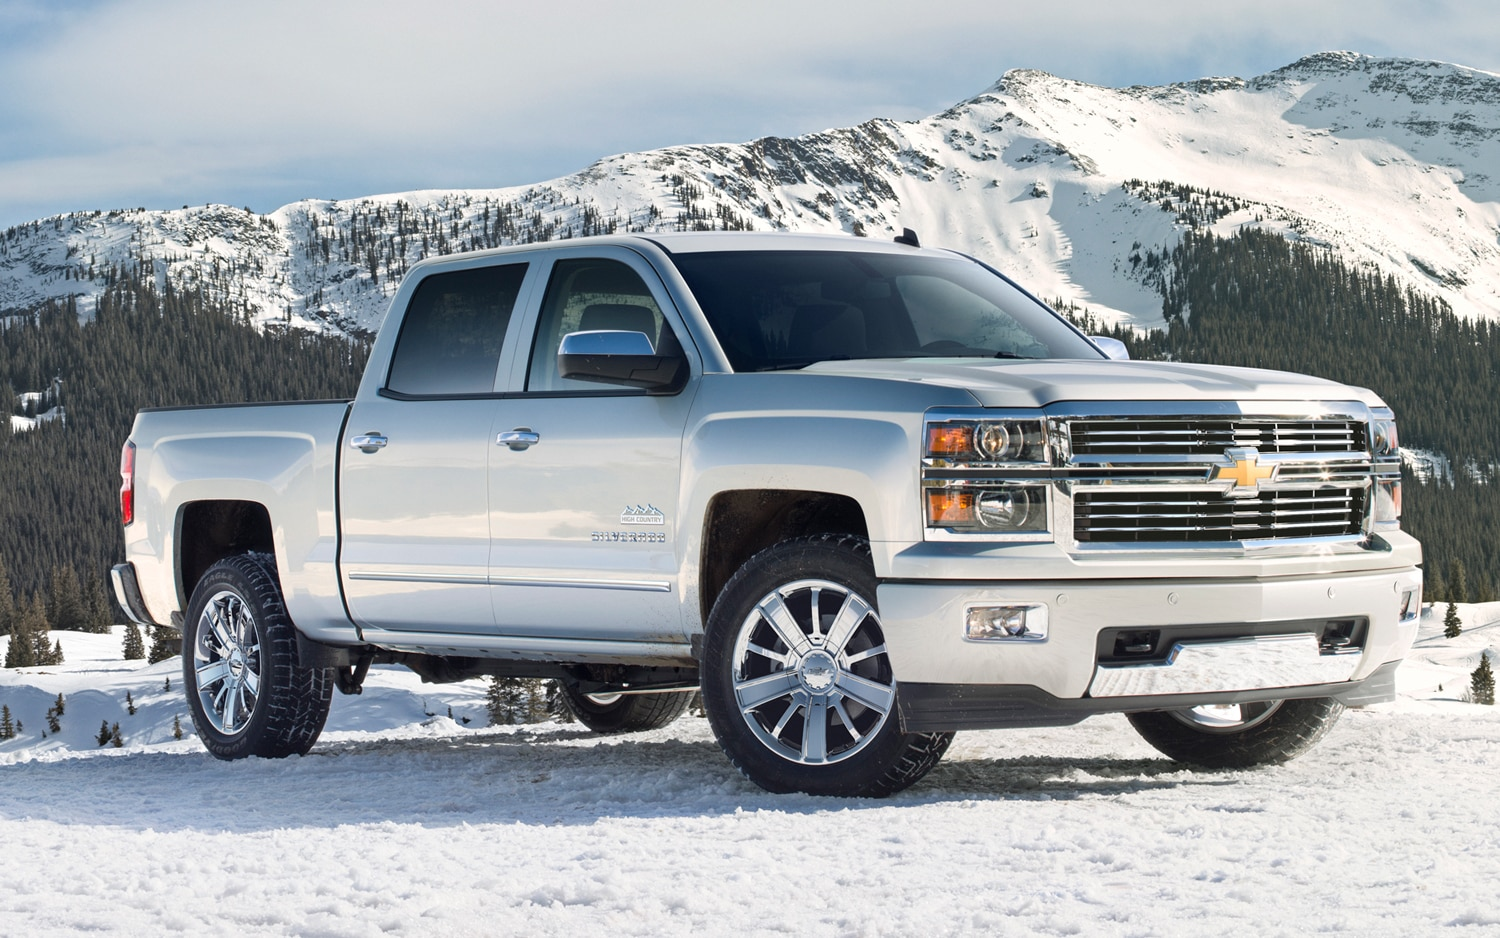 2014 chevrolet silverado first drive automobile magazine. Black Bedroom Furniture Sets. Home Design Ideas